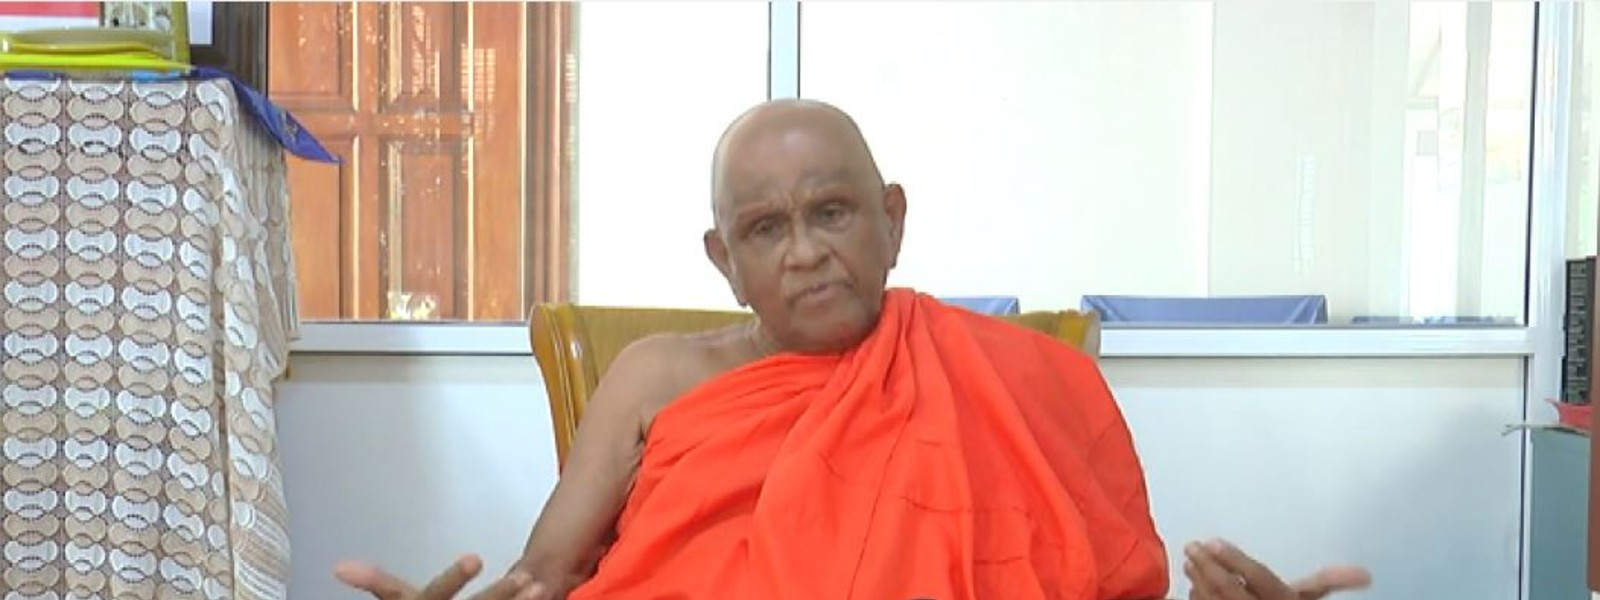 'The people are fed-up with the Government'- Ven. Muruththettuwe Thero